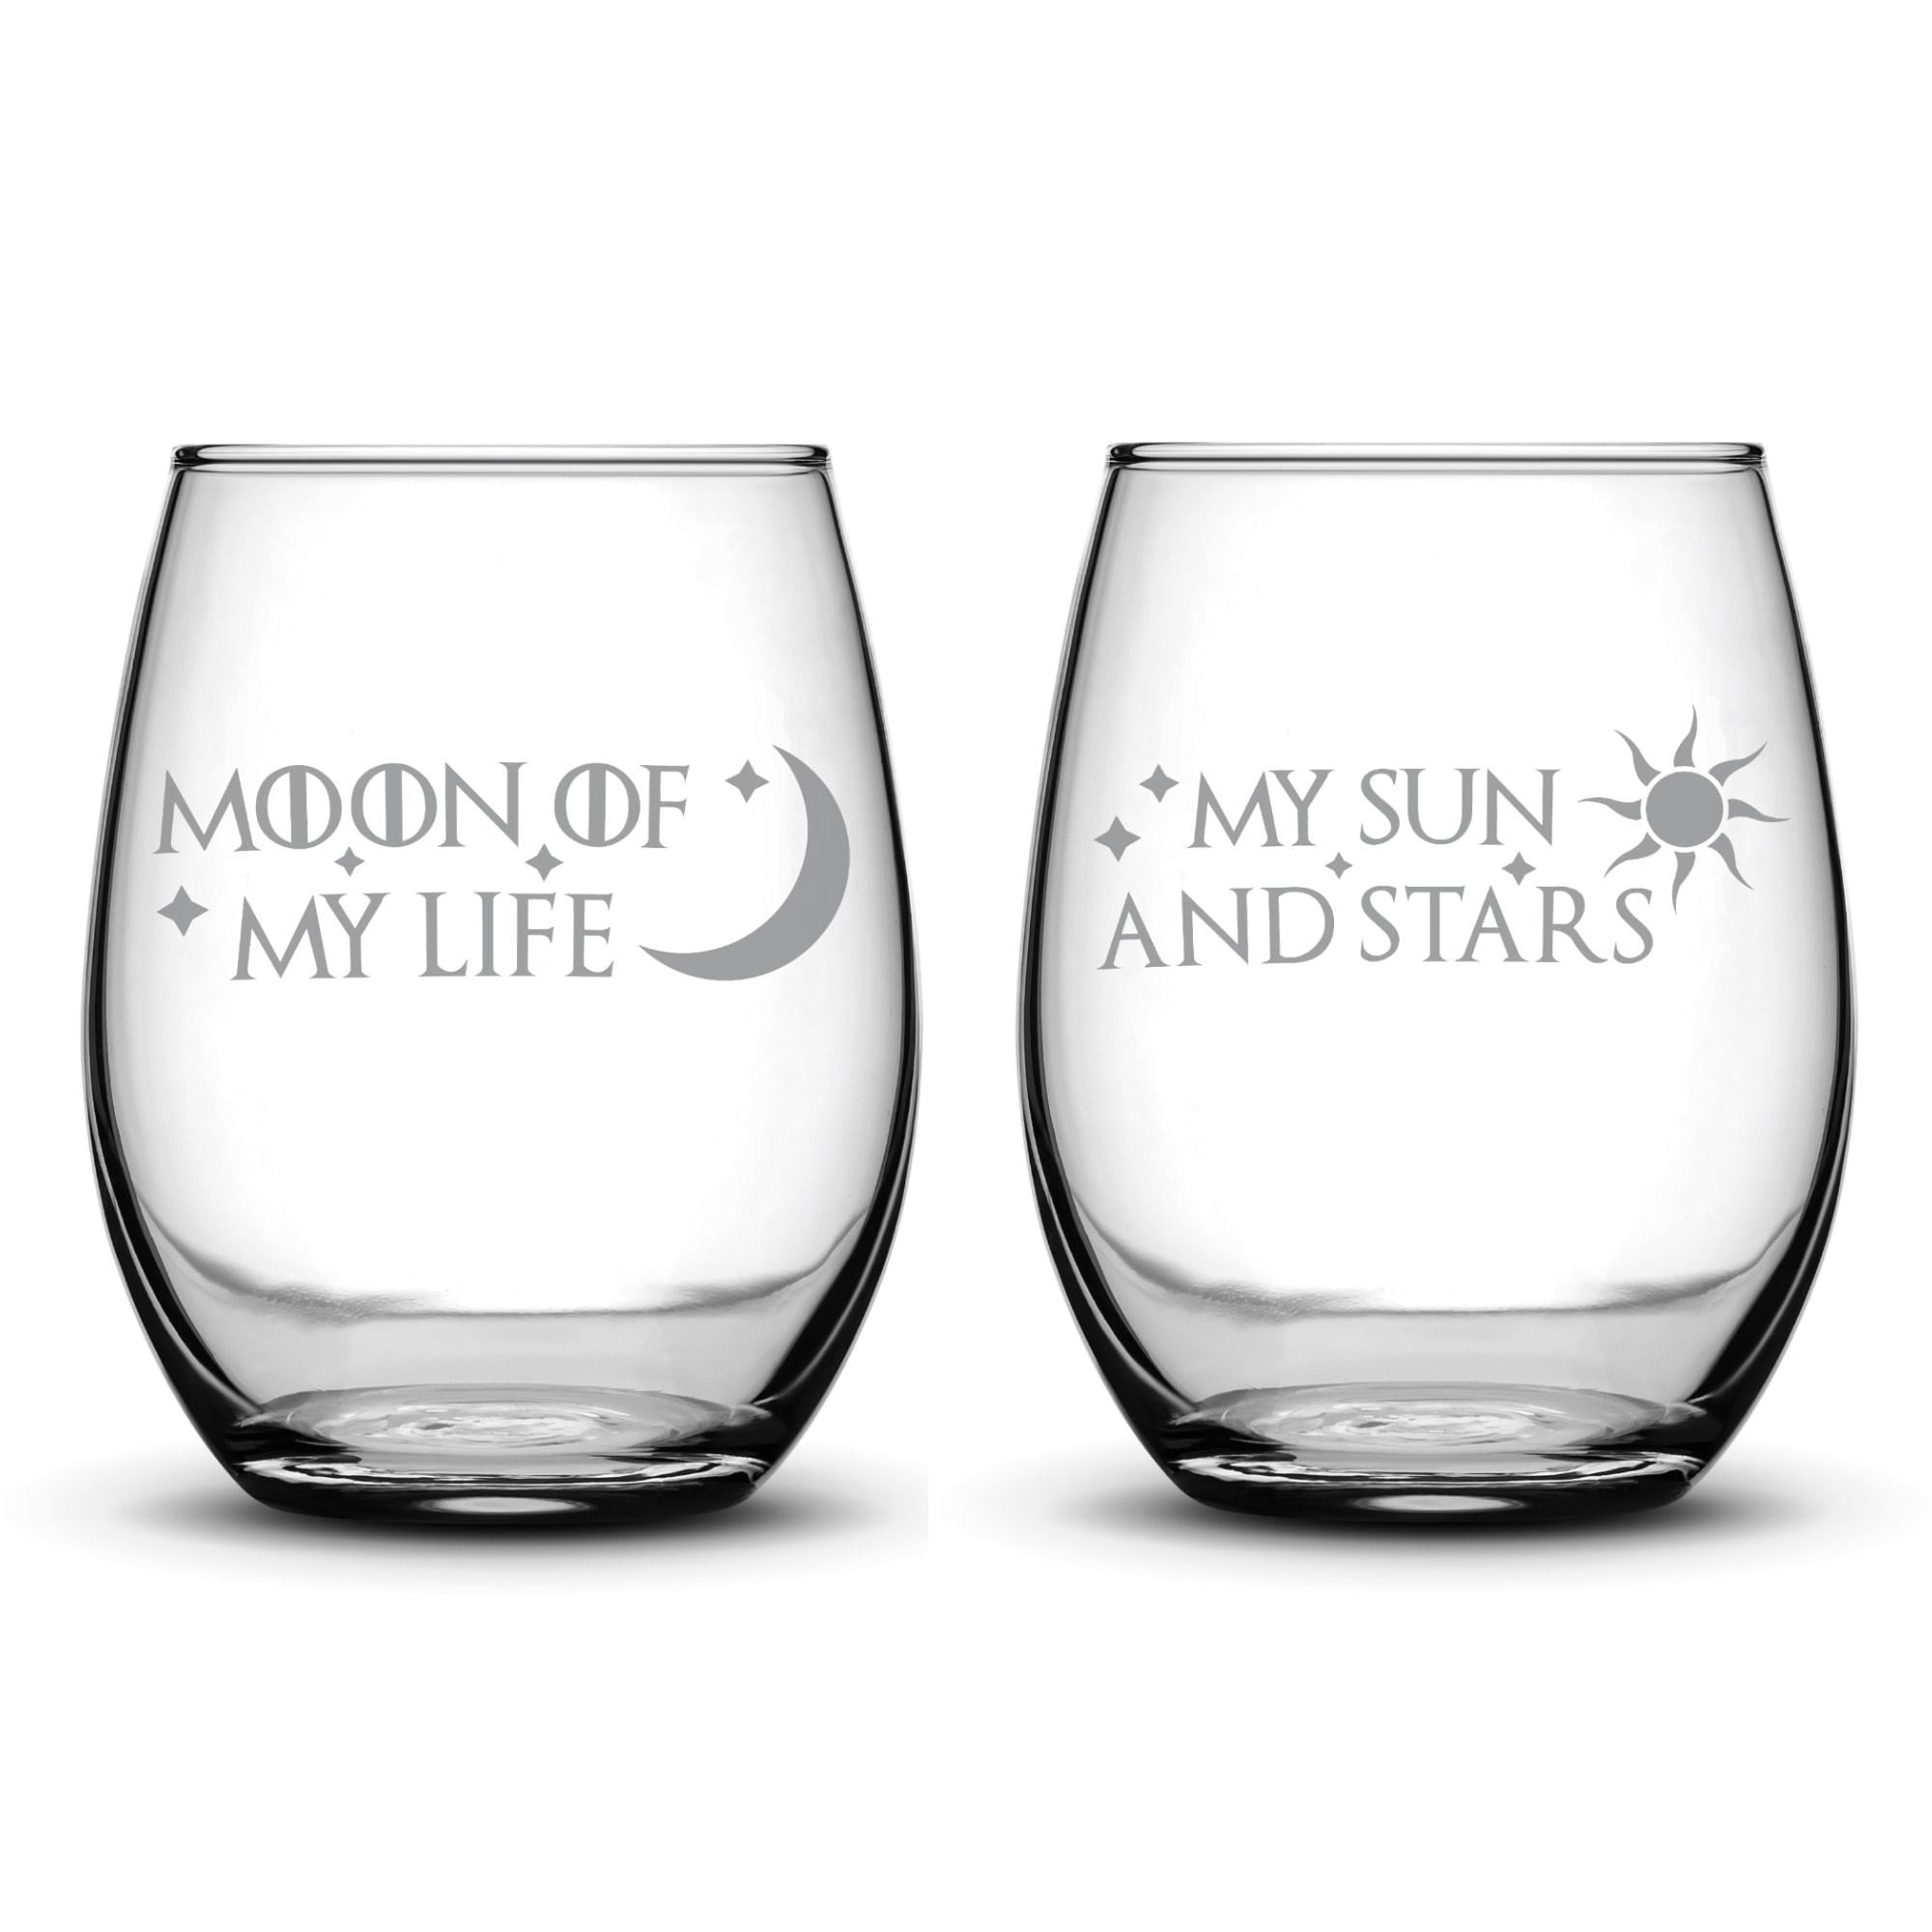 Premium Game of Thrones Wine Glasses, Set of 2, Moon of My Life, My Sun and Stars, Hand Etched 14.2oz Stemless Gifts, Made in USA by Integrity Bottles